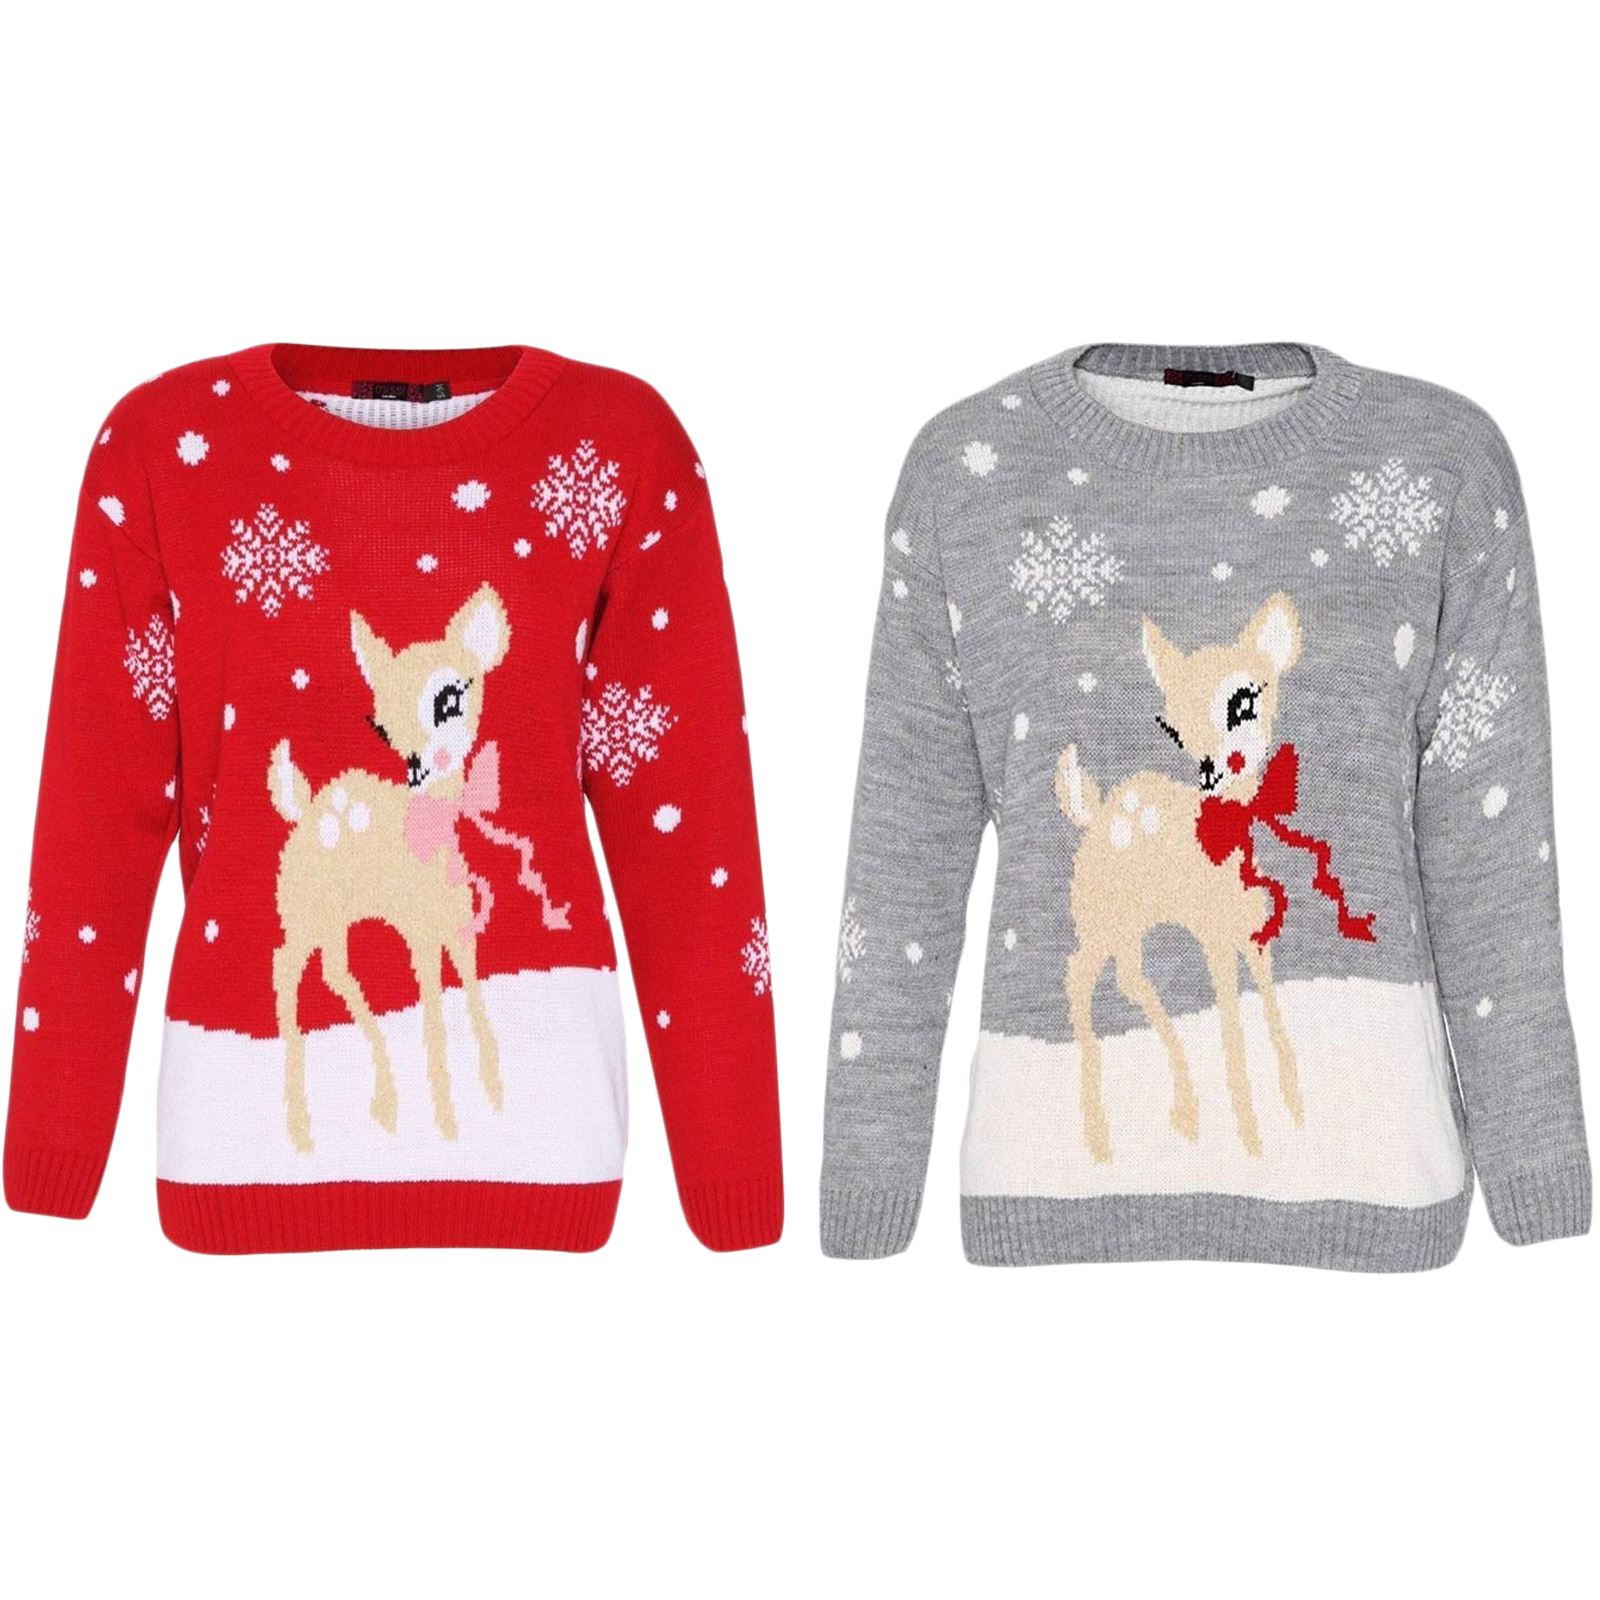 9240ead171de Womens Christmas Jumper Ladies Pullover Sweater Reindeer Deer ...